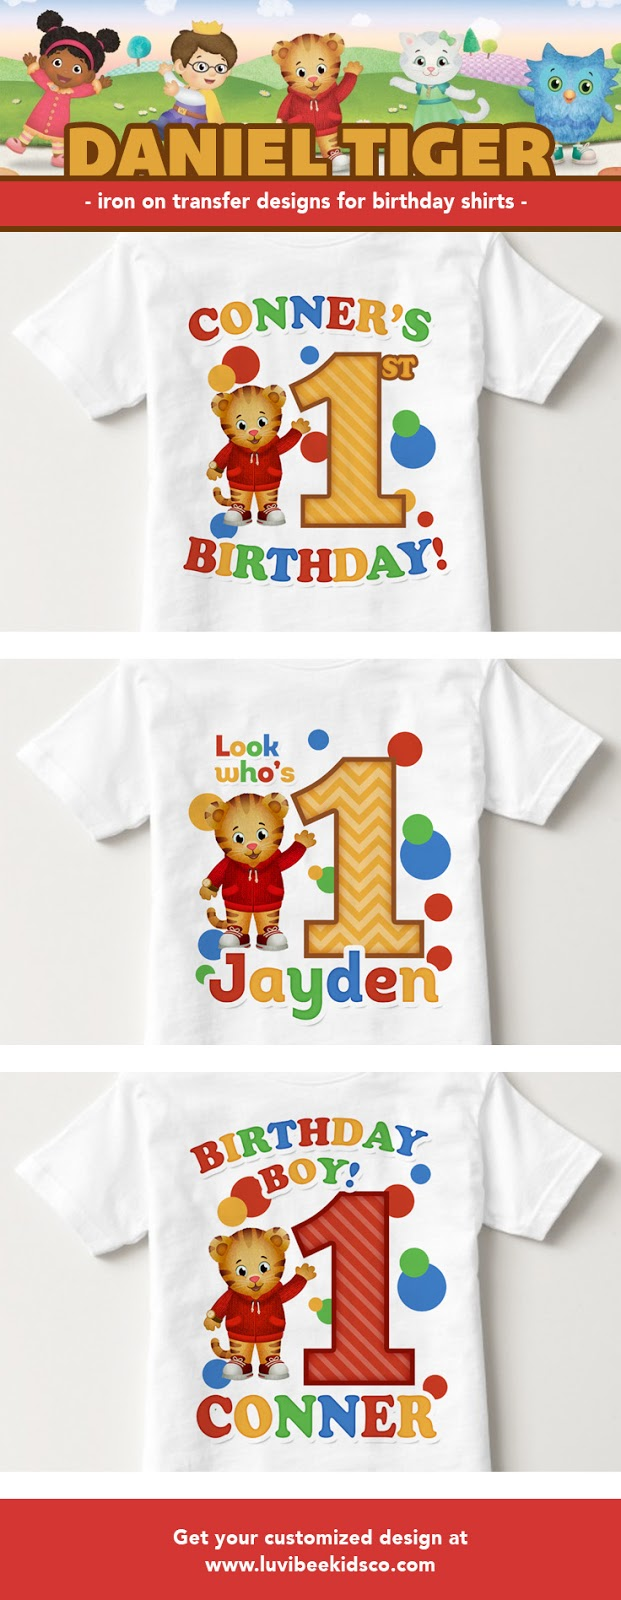 https://www.luvibeekidsco.com/collections/daniel-tiger-transfers